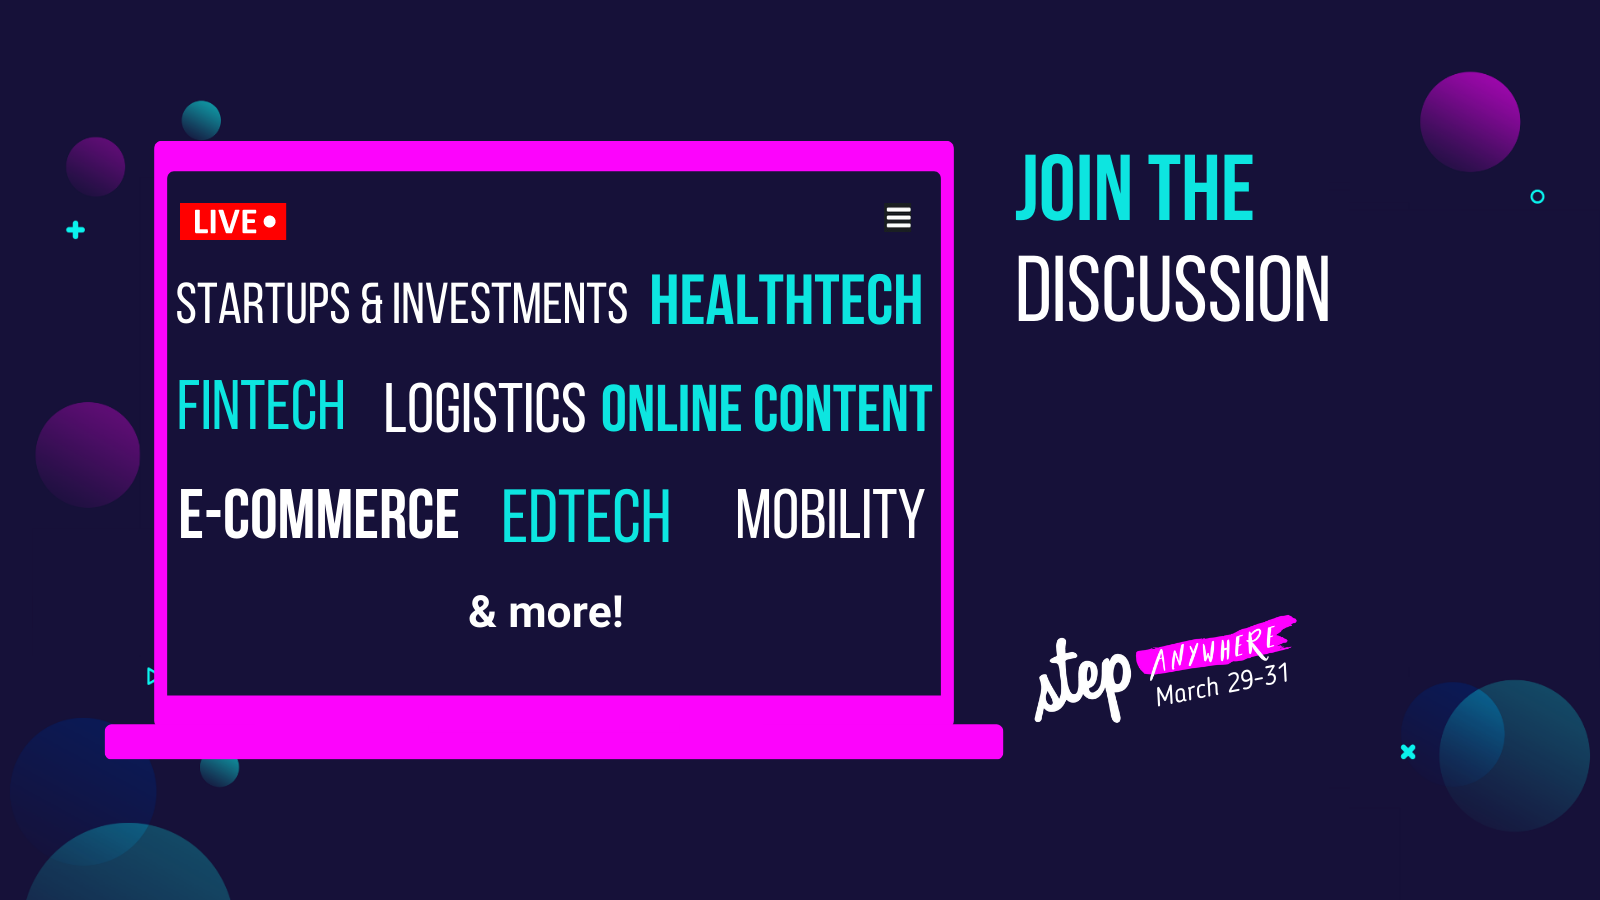 Step Anywhere 2021 to provide opportunities for startups to showcase their product or service